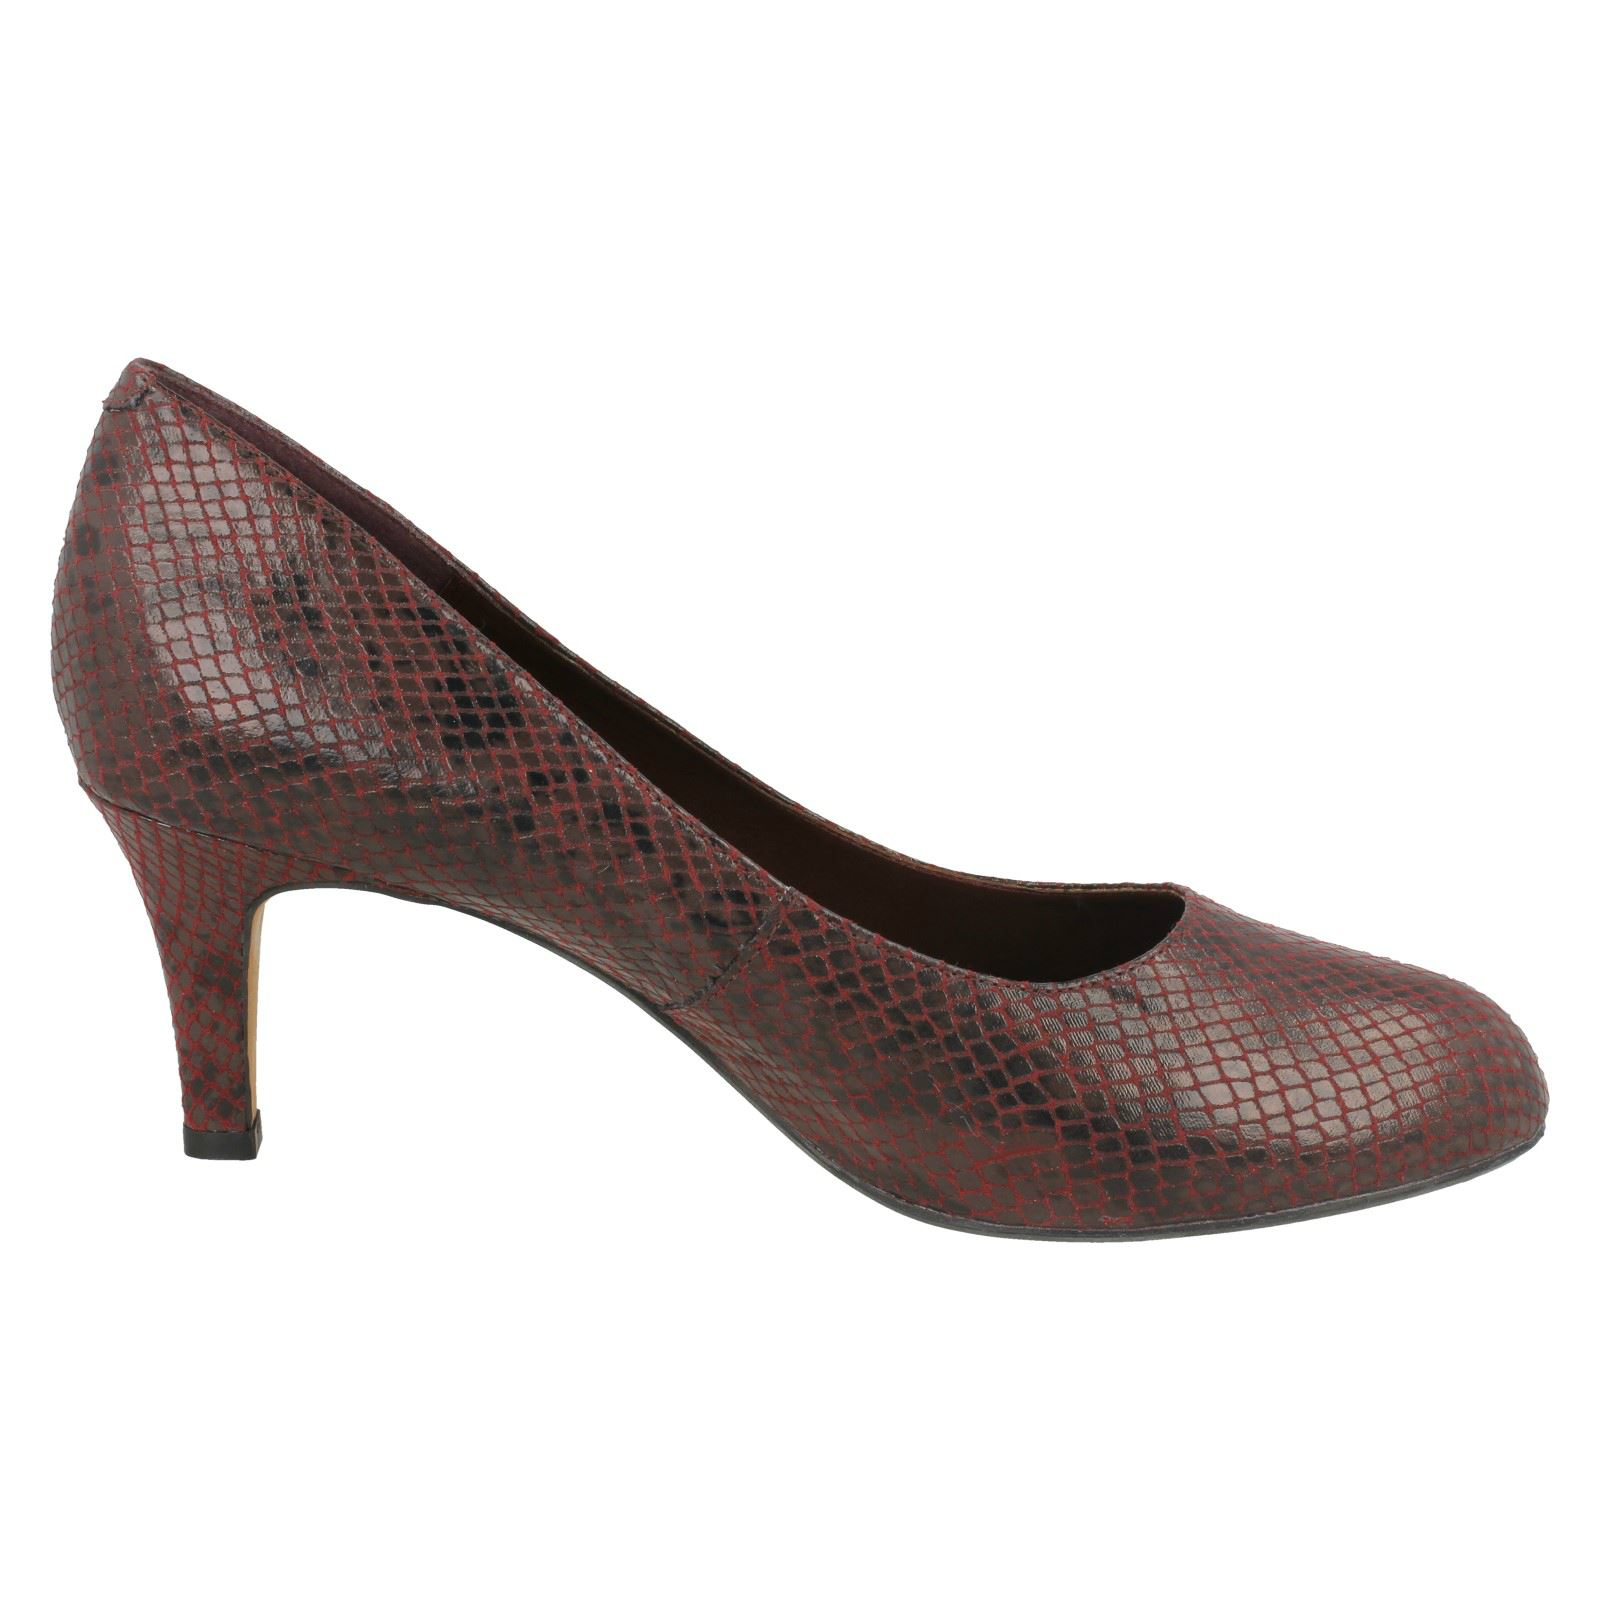 Ladies-Clarks-Slip-On-Leather-And-Patent-Classic-Court-Shoes-Arista-Abe